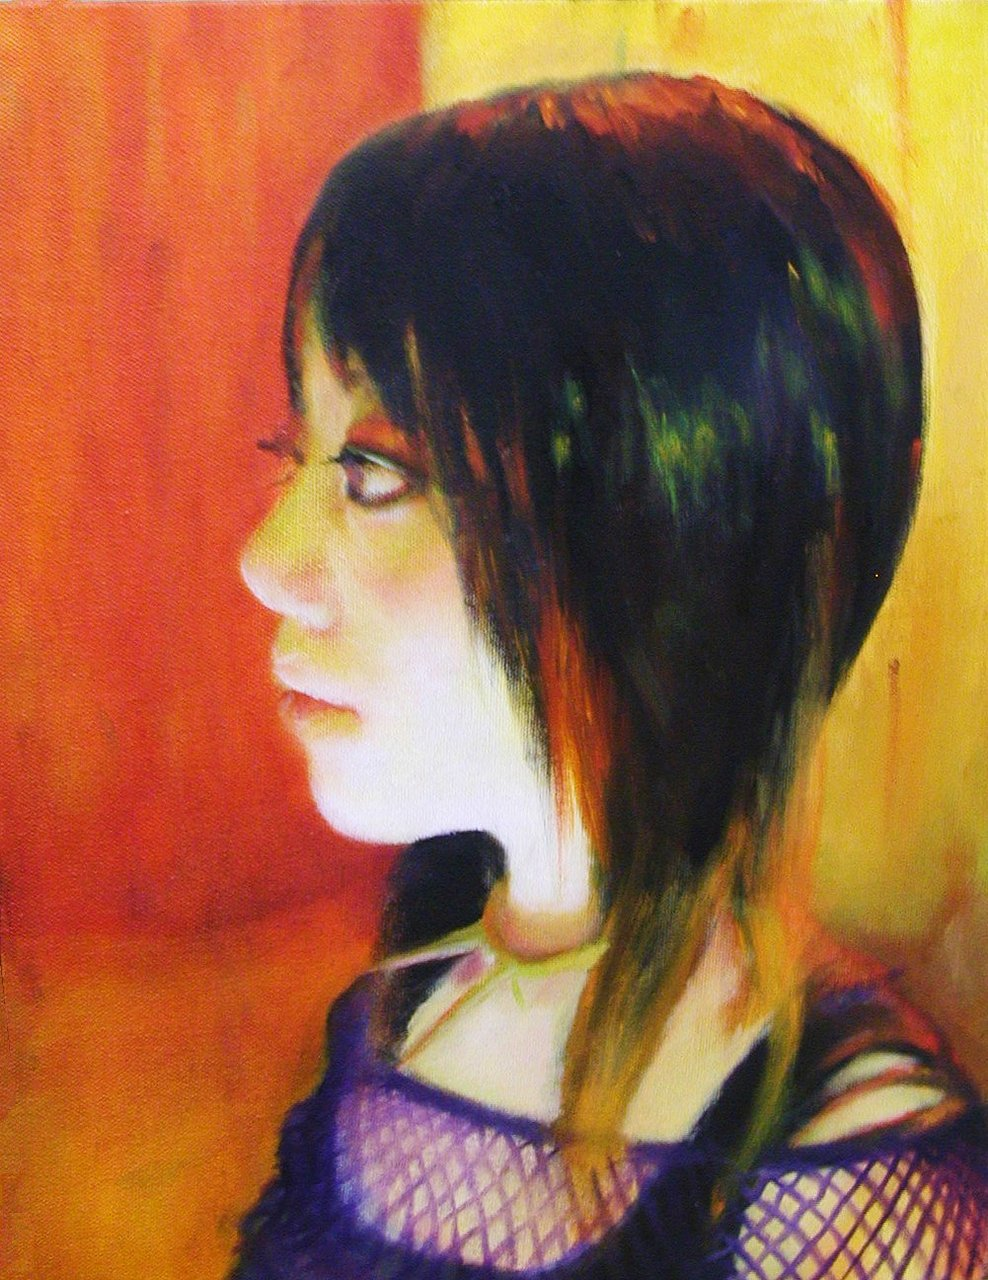 Sydney+M+Pertl.+Michelle+WIP.+Oil+on+Canvas.+10x12.+Spring+2007.jpg